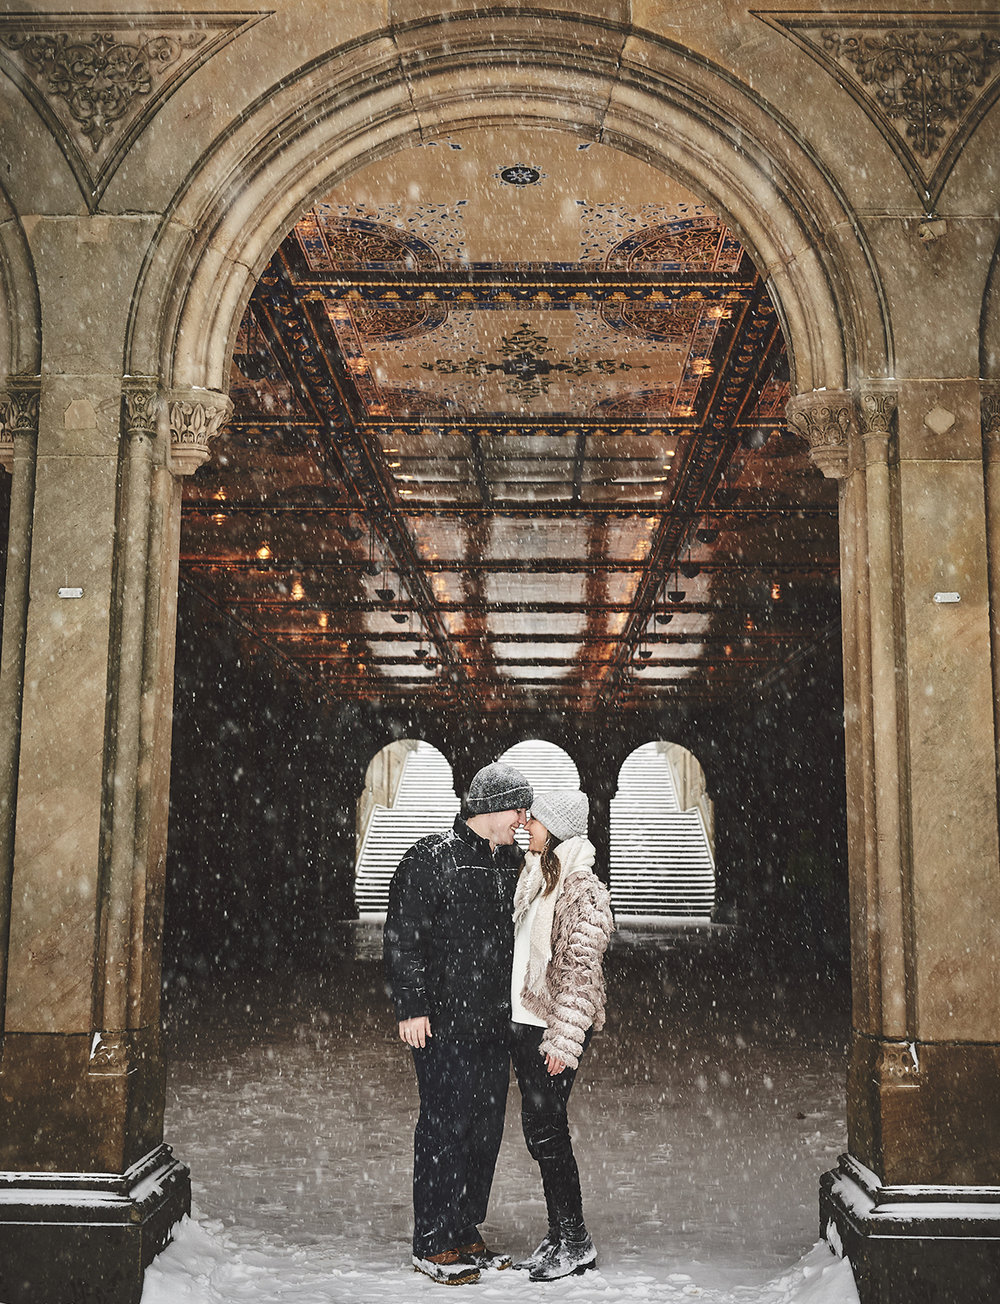 180104_NYCSurpriseProposalPhotography_CentralParkSurpriseProposal_By_BriJohnsonWeddings_0016.jpg